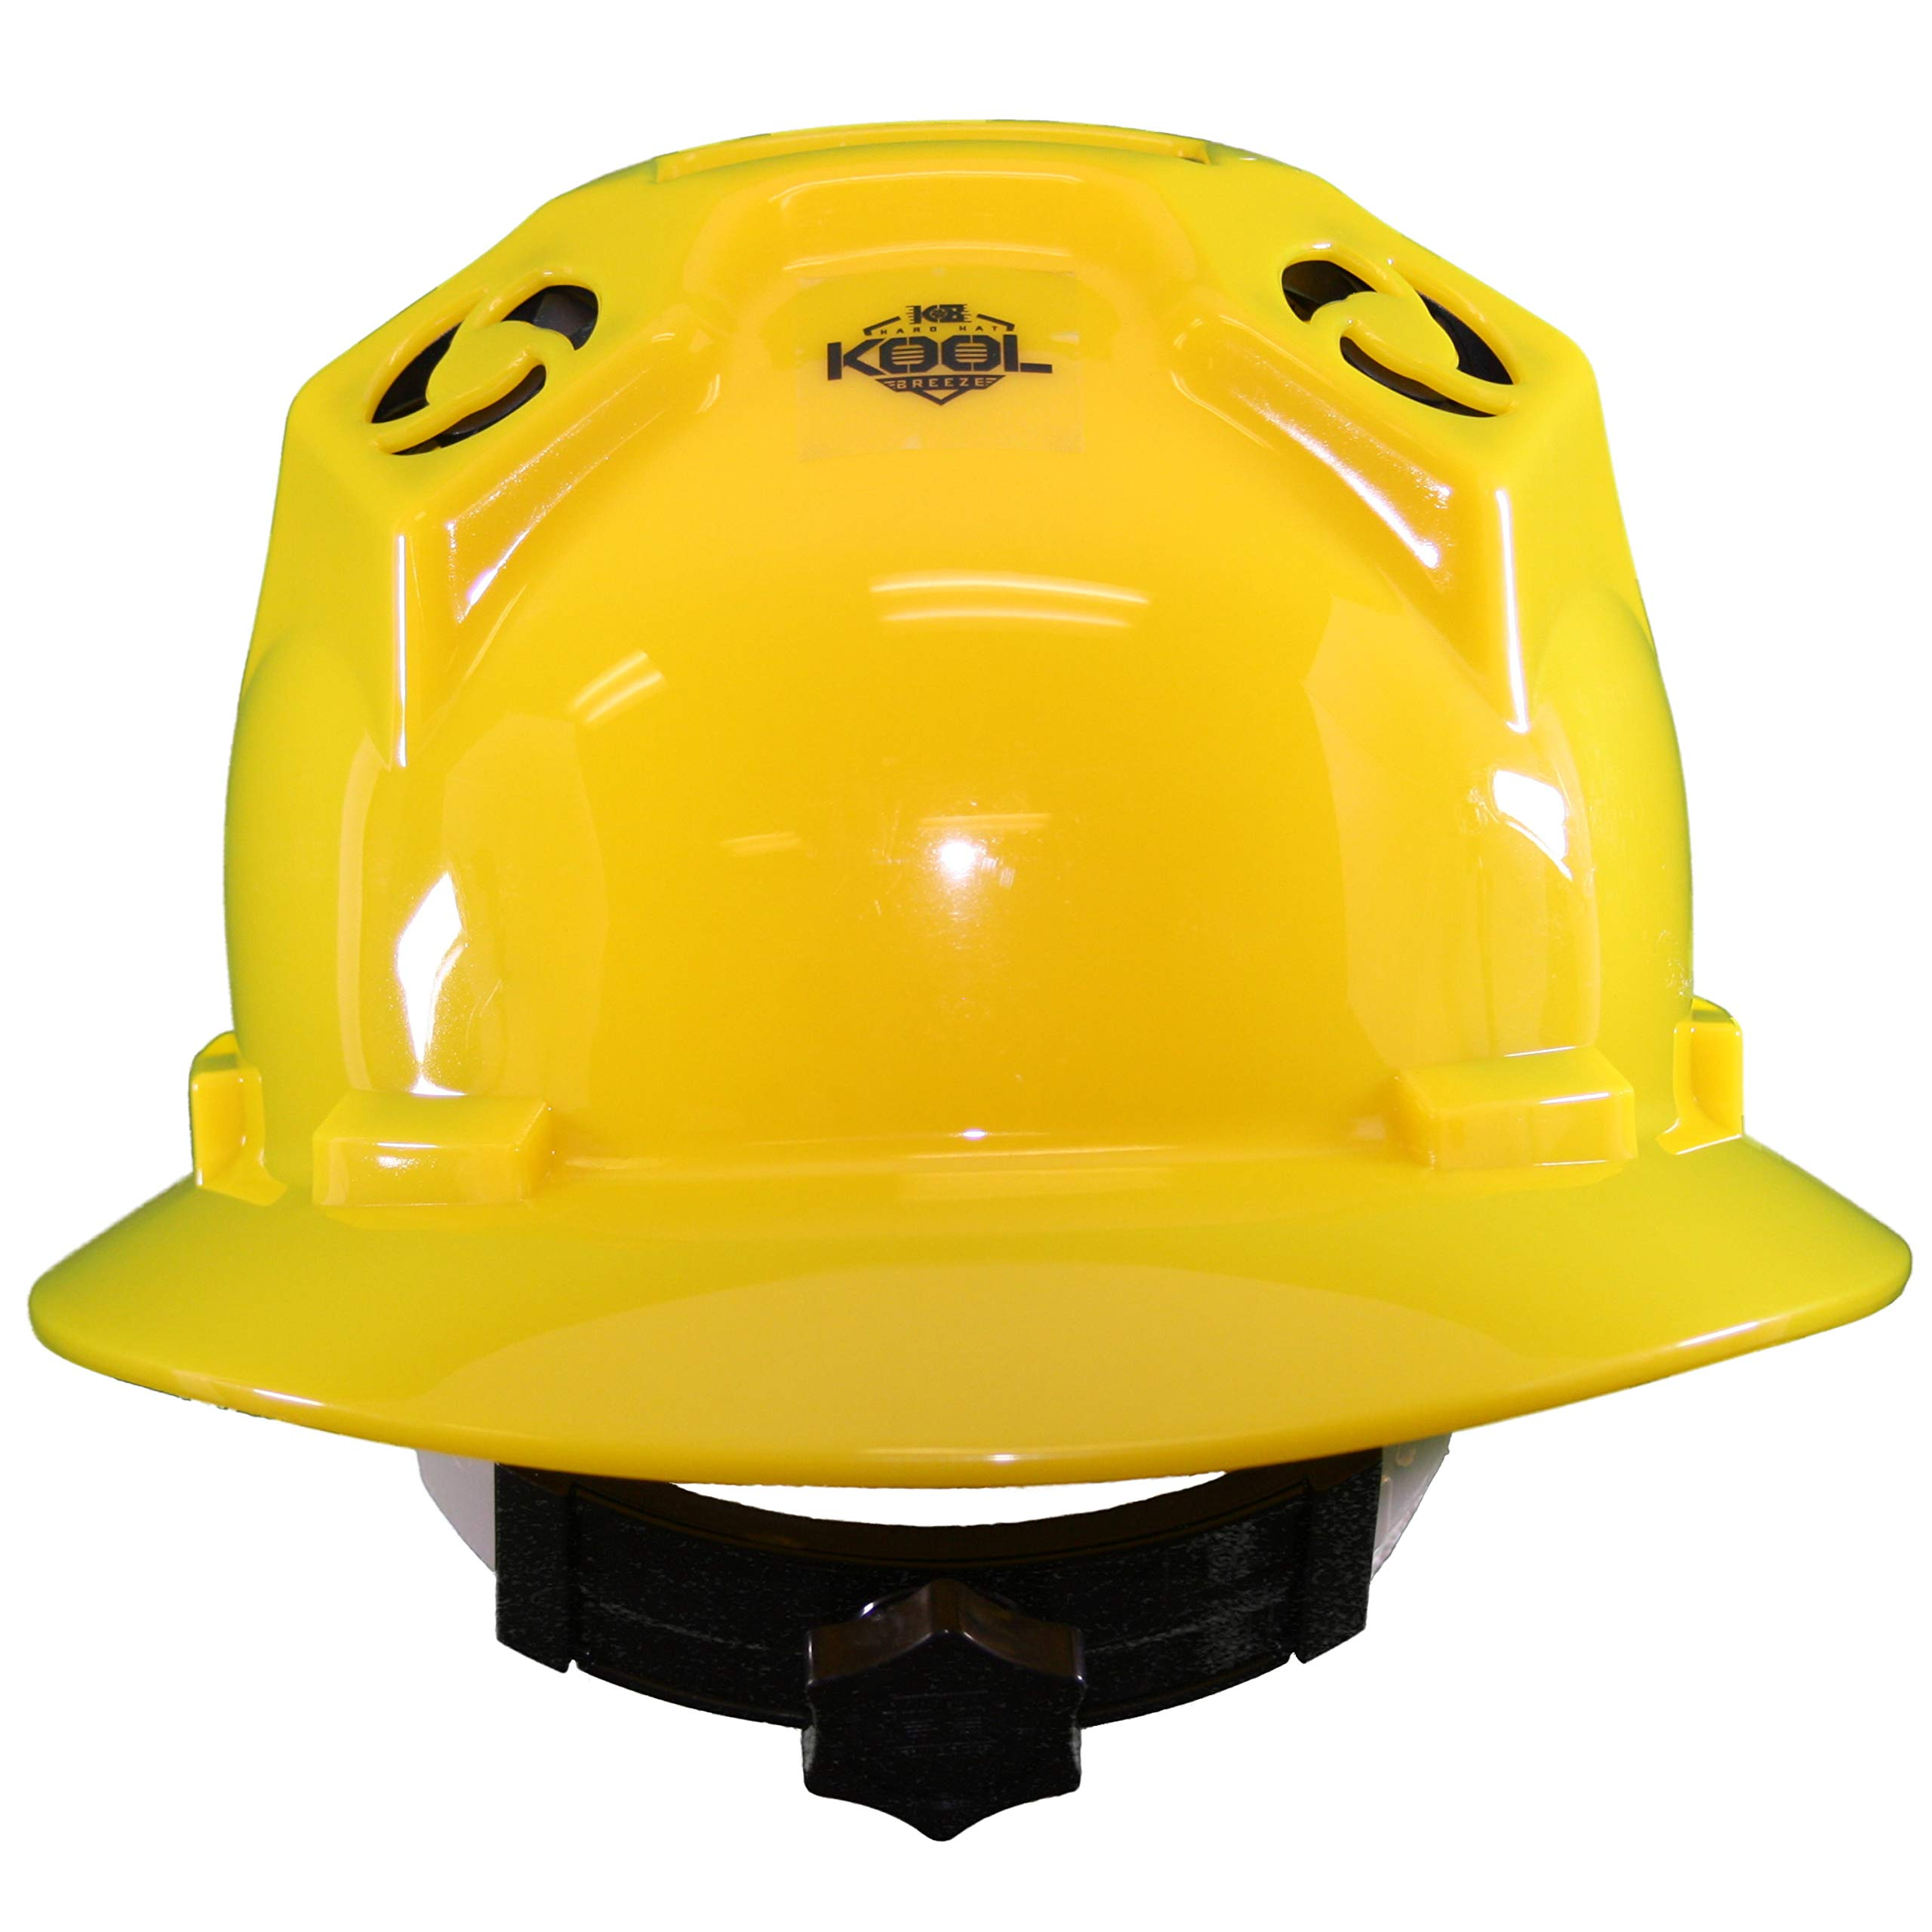 Hard Hat Head Protection Kool Breeze Solar Helmet With Rechargeable Battery and Adjustable Ratchet Suspension (Yellow) by Kool Breeze Solar Hats (Image #3)